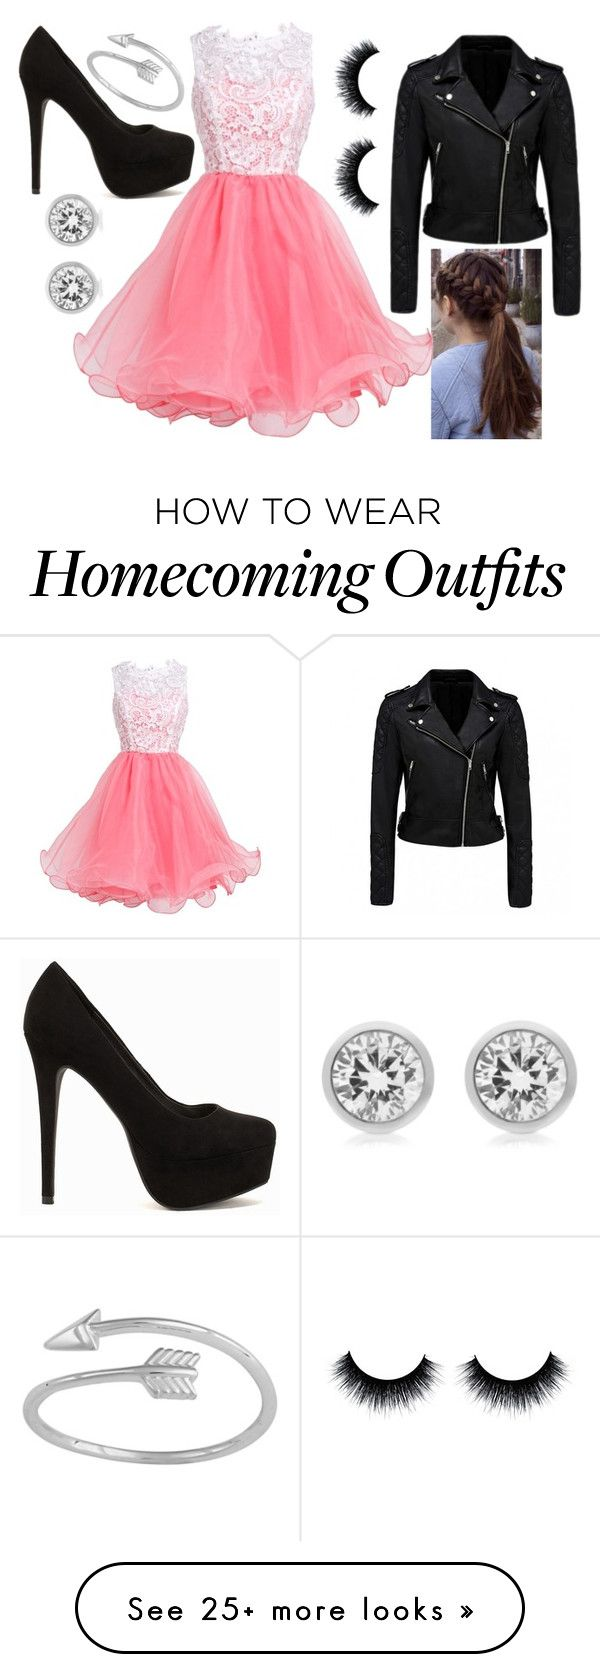 """"" by hcs72902 on Polyvore featuring Nly Shoes, Forever New and Michael Kors"